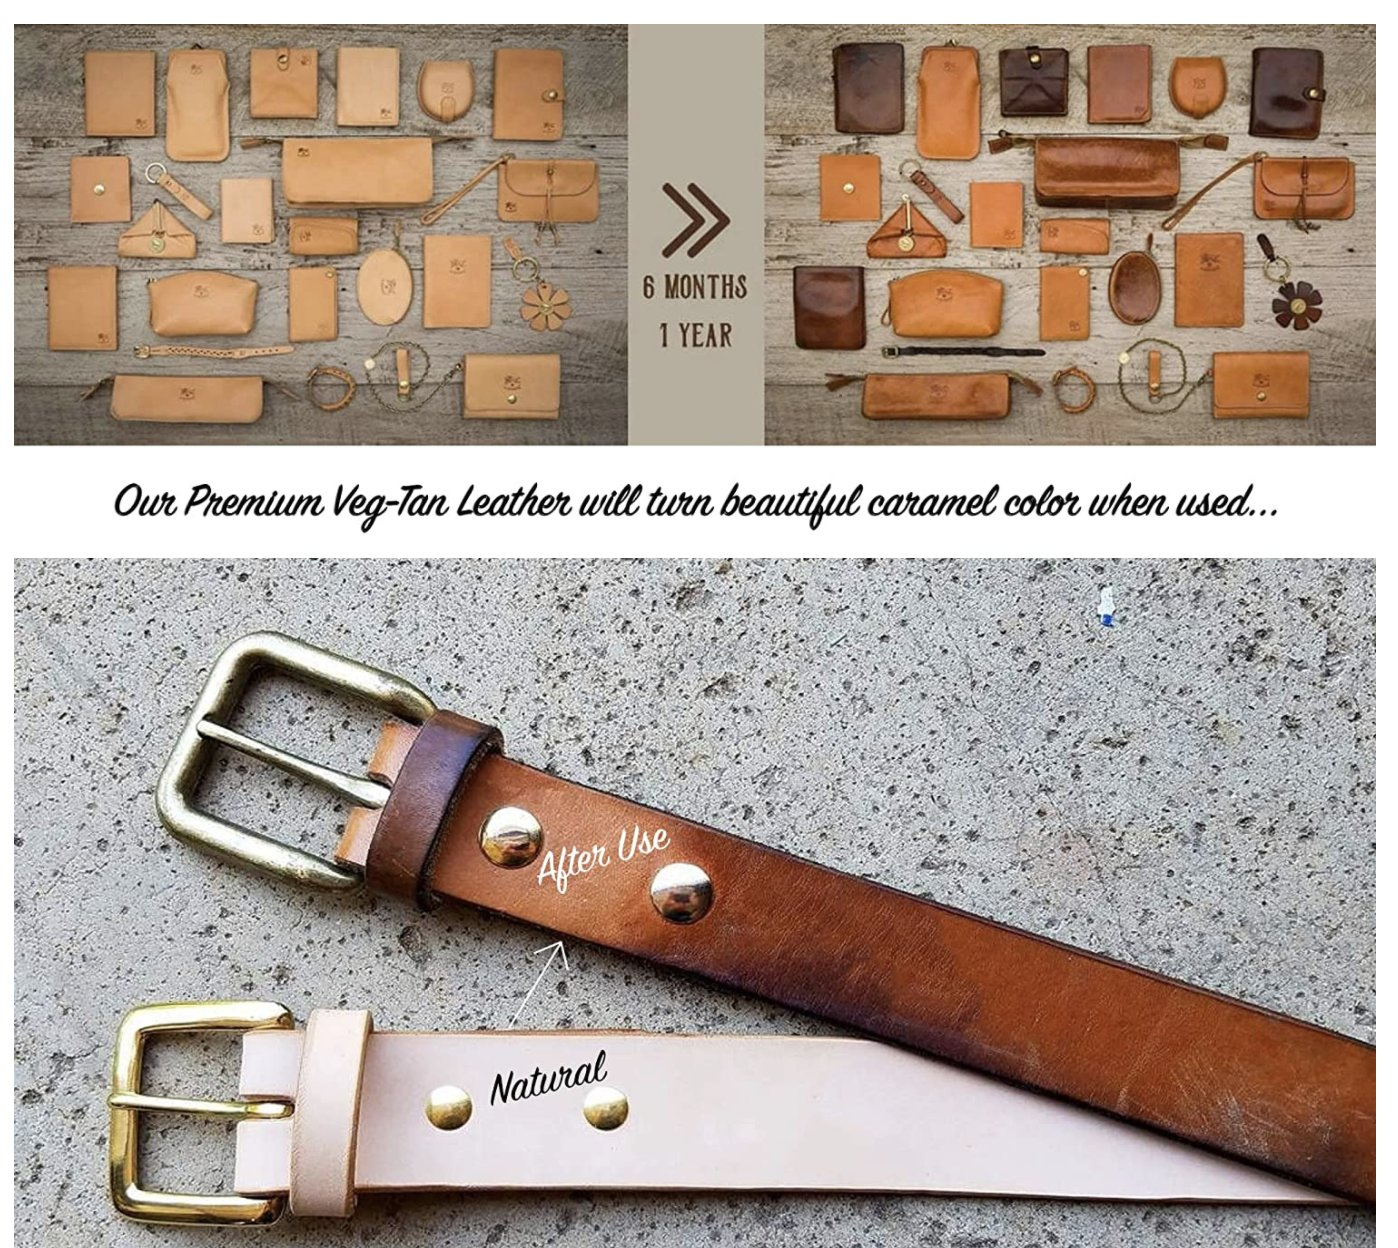 8//9oz Vegetable Tanned Leather Strap Strip Cowhide Leather customized men belt